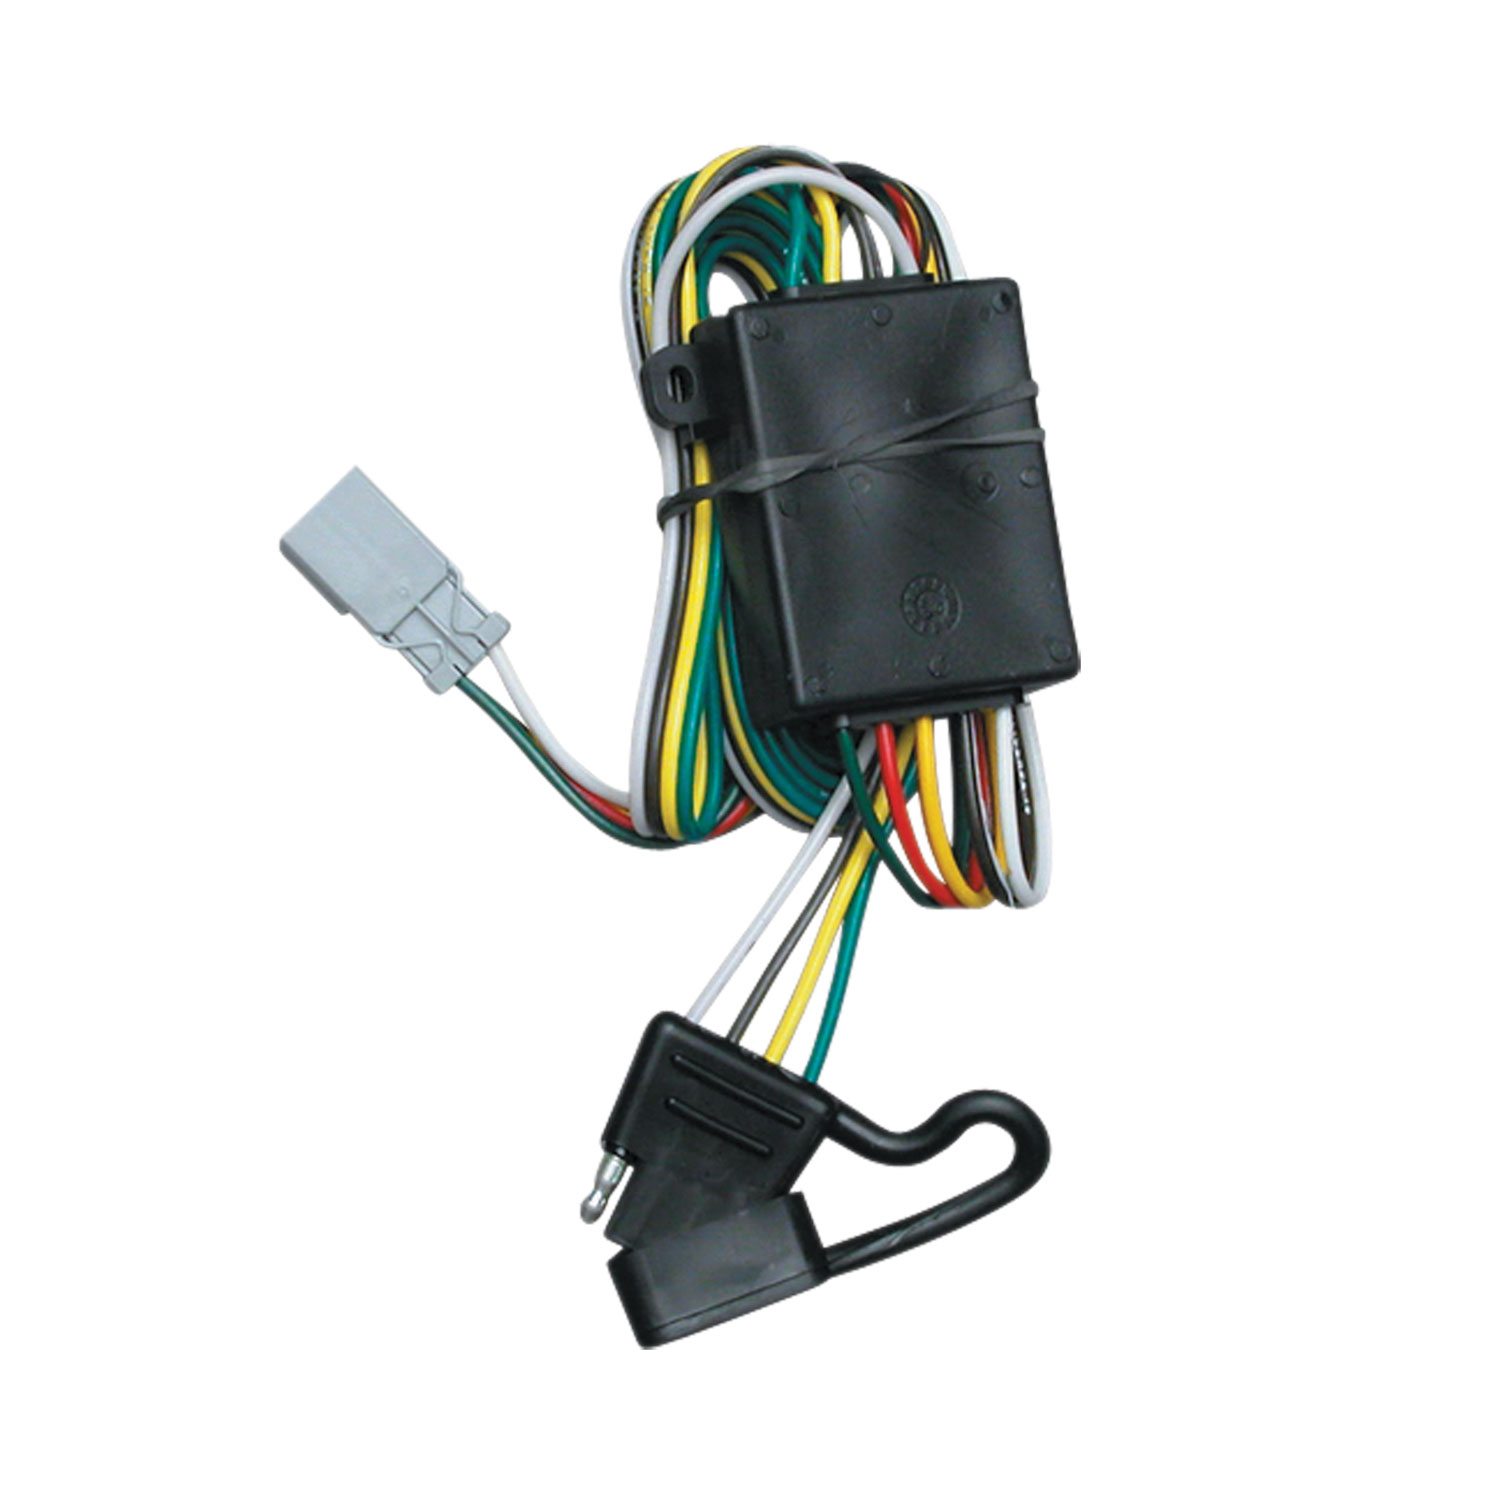 hight resolution of tekonsha 118336 trailer wiring connector t one 4 way flat replacement for oem wiring harness